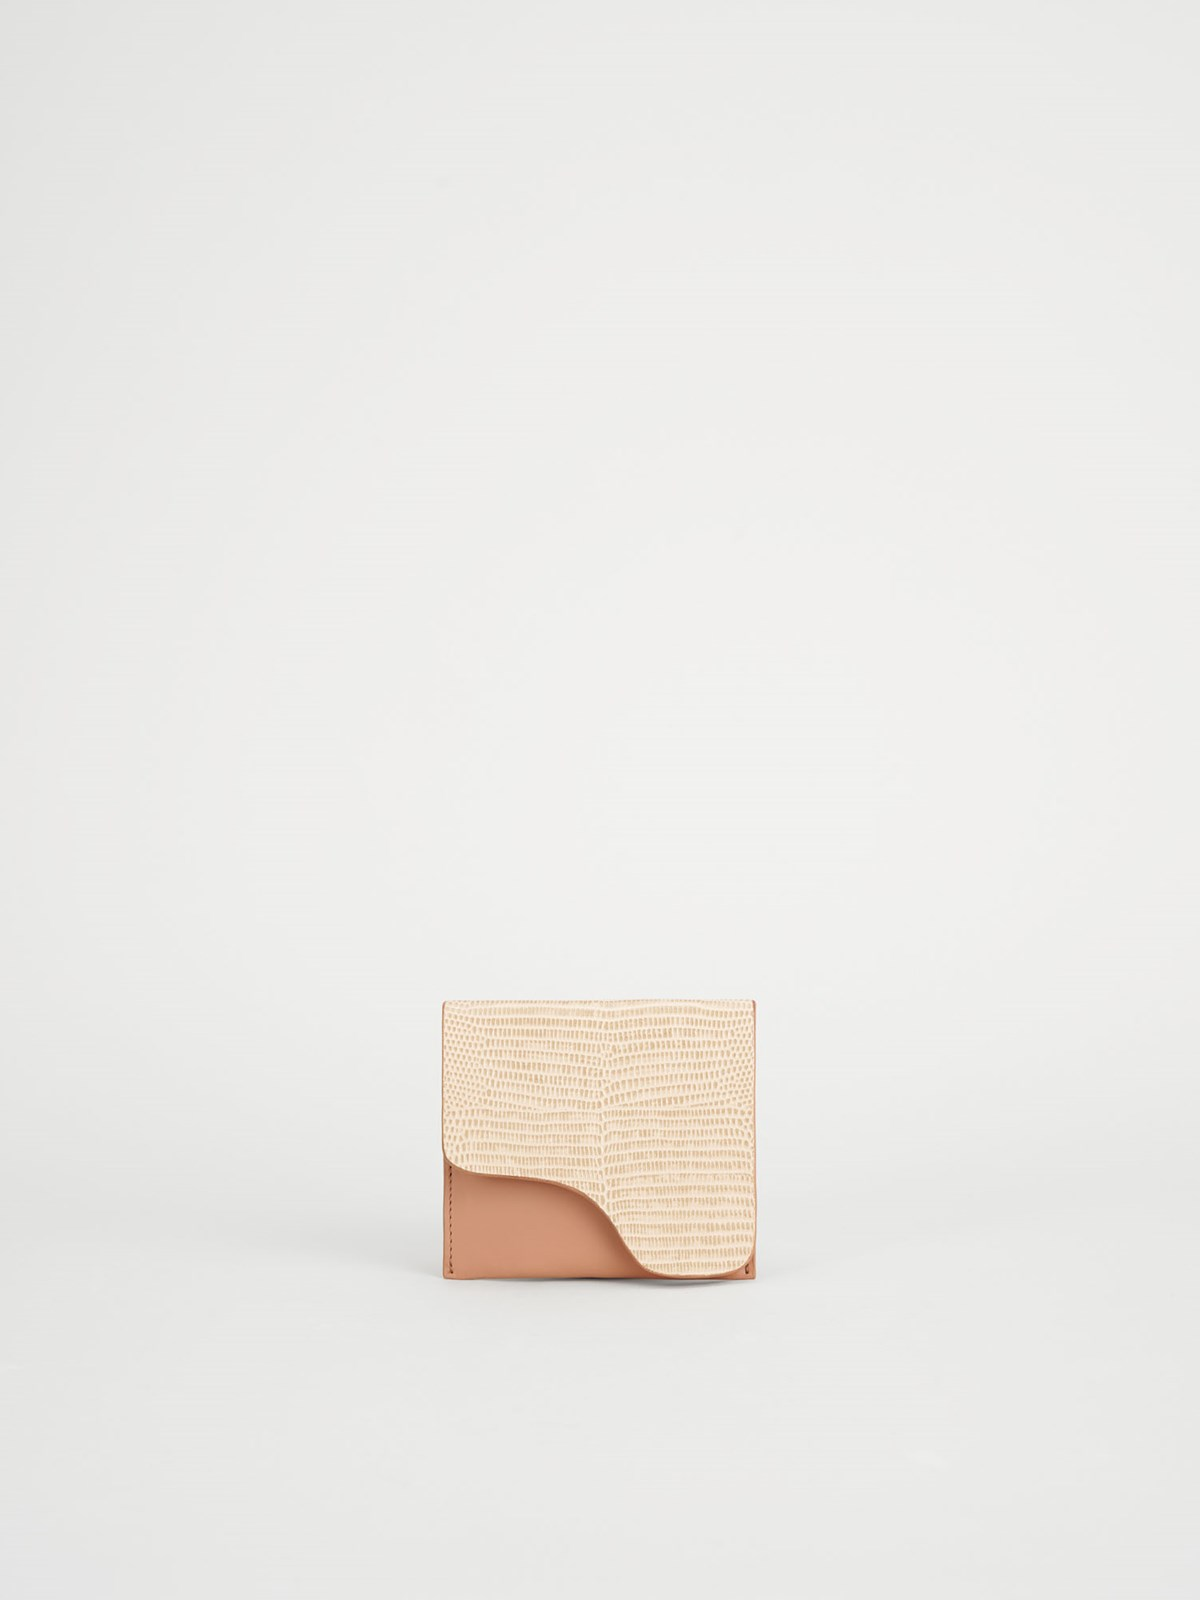 Olba Light Beige Wallet